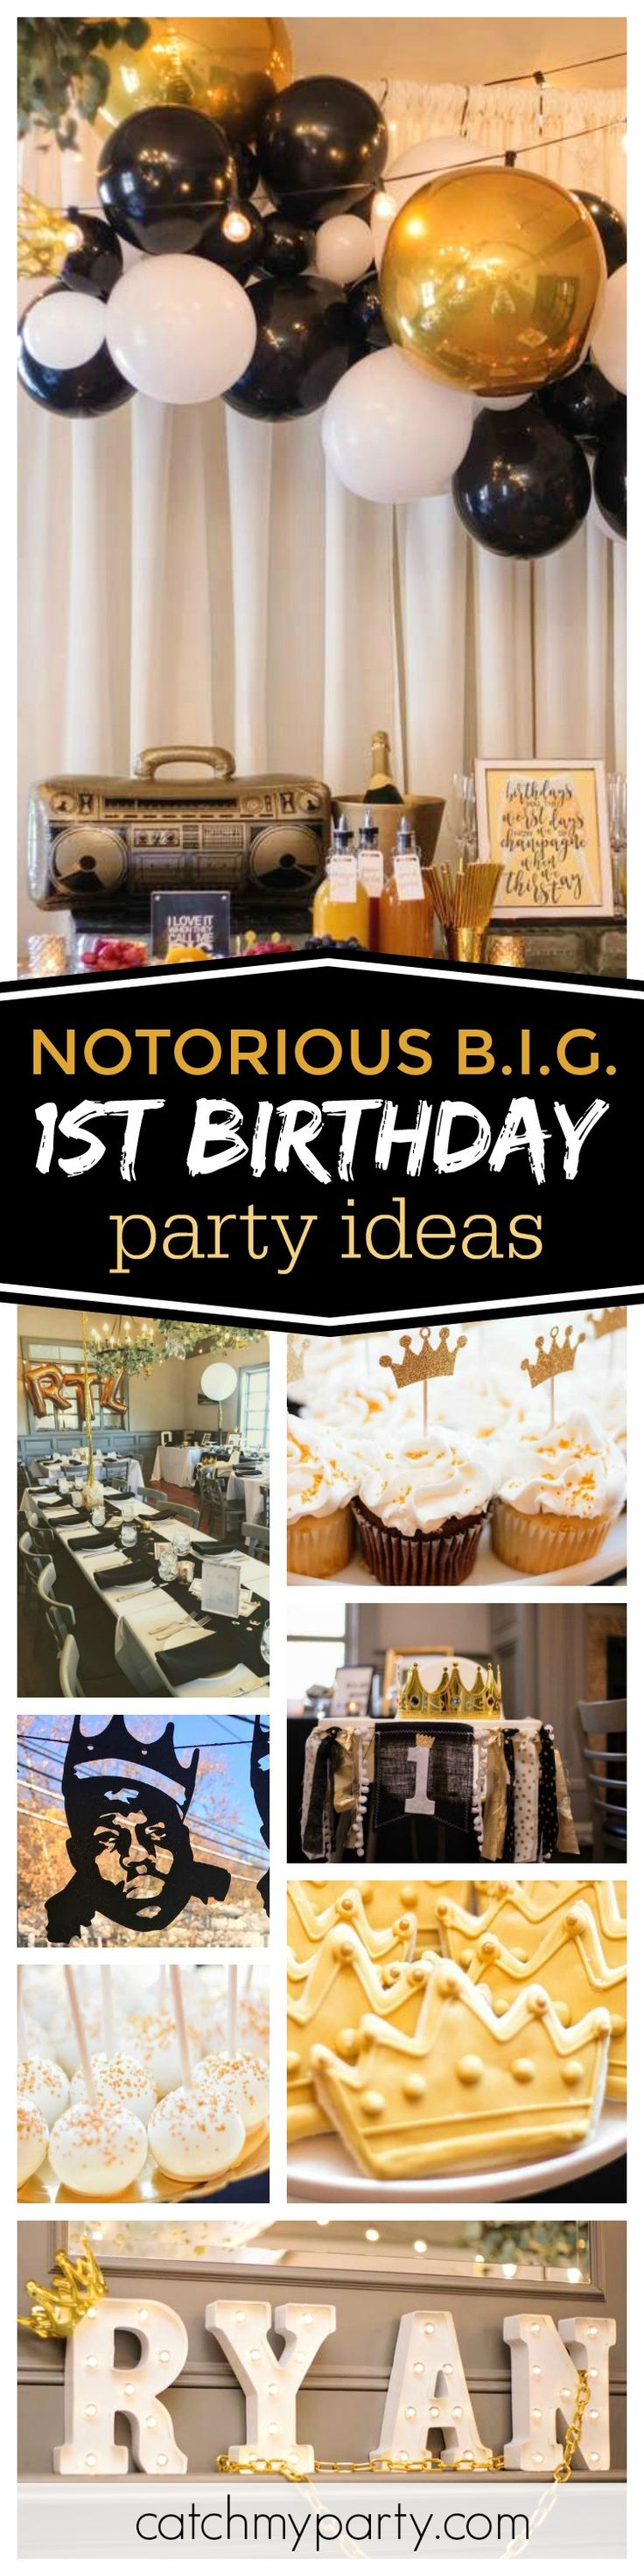 Check out this fantastic Notorious B.I.G. 1st birthday party. The balloon decorations are excellent!! See more party ideas and share yours at CatchMyParty.com